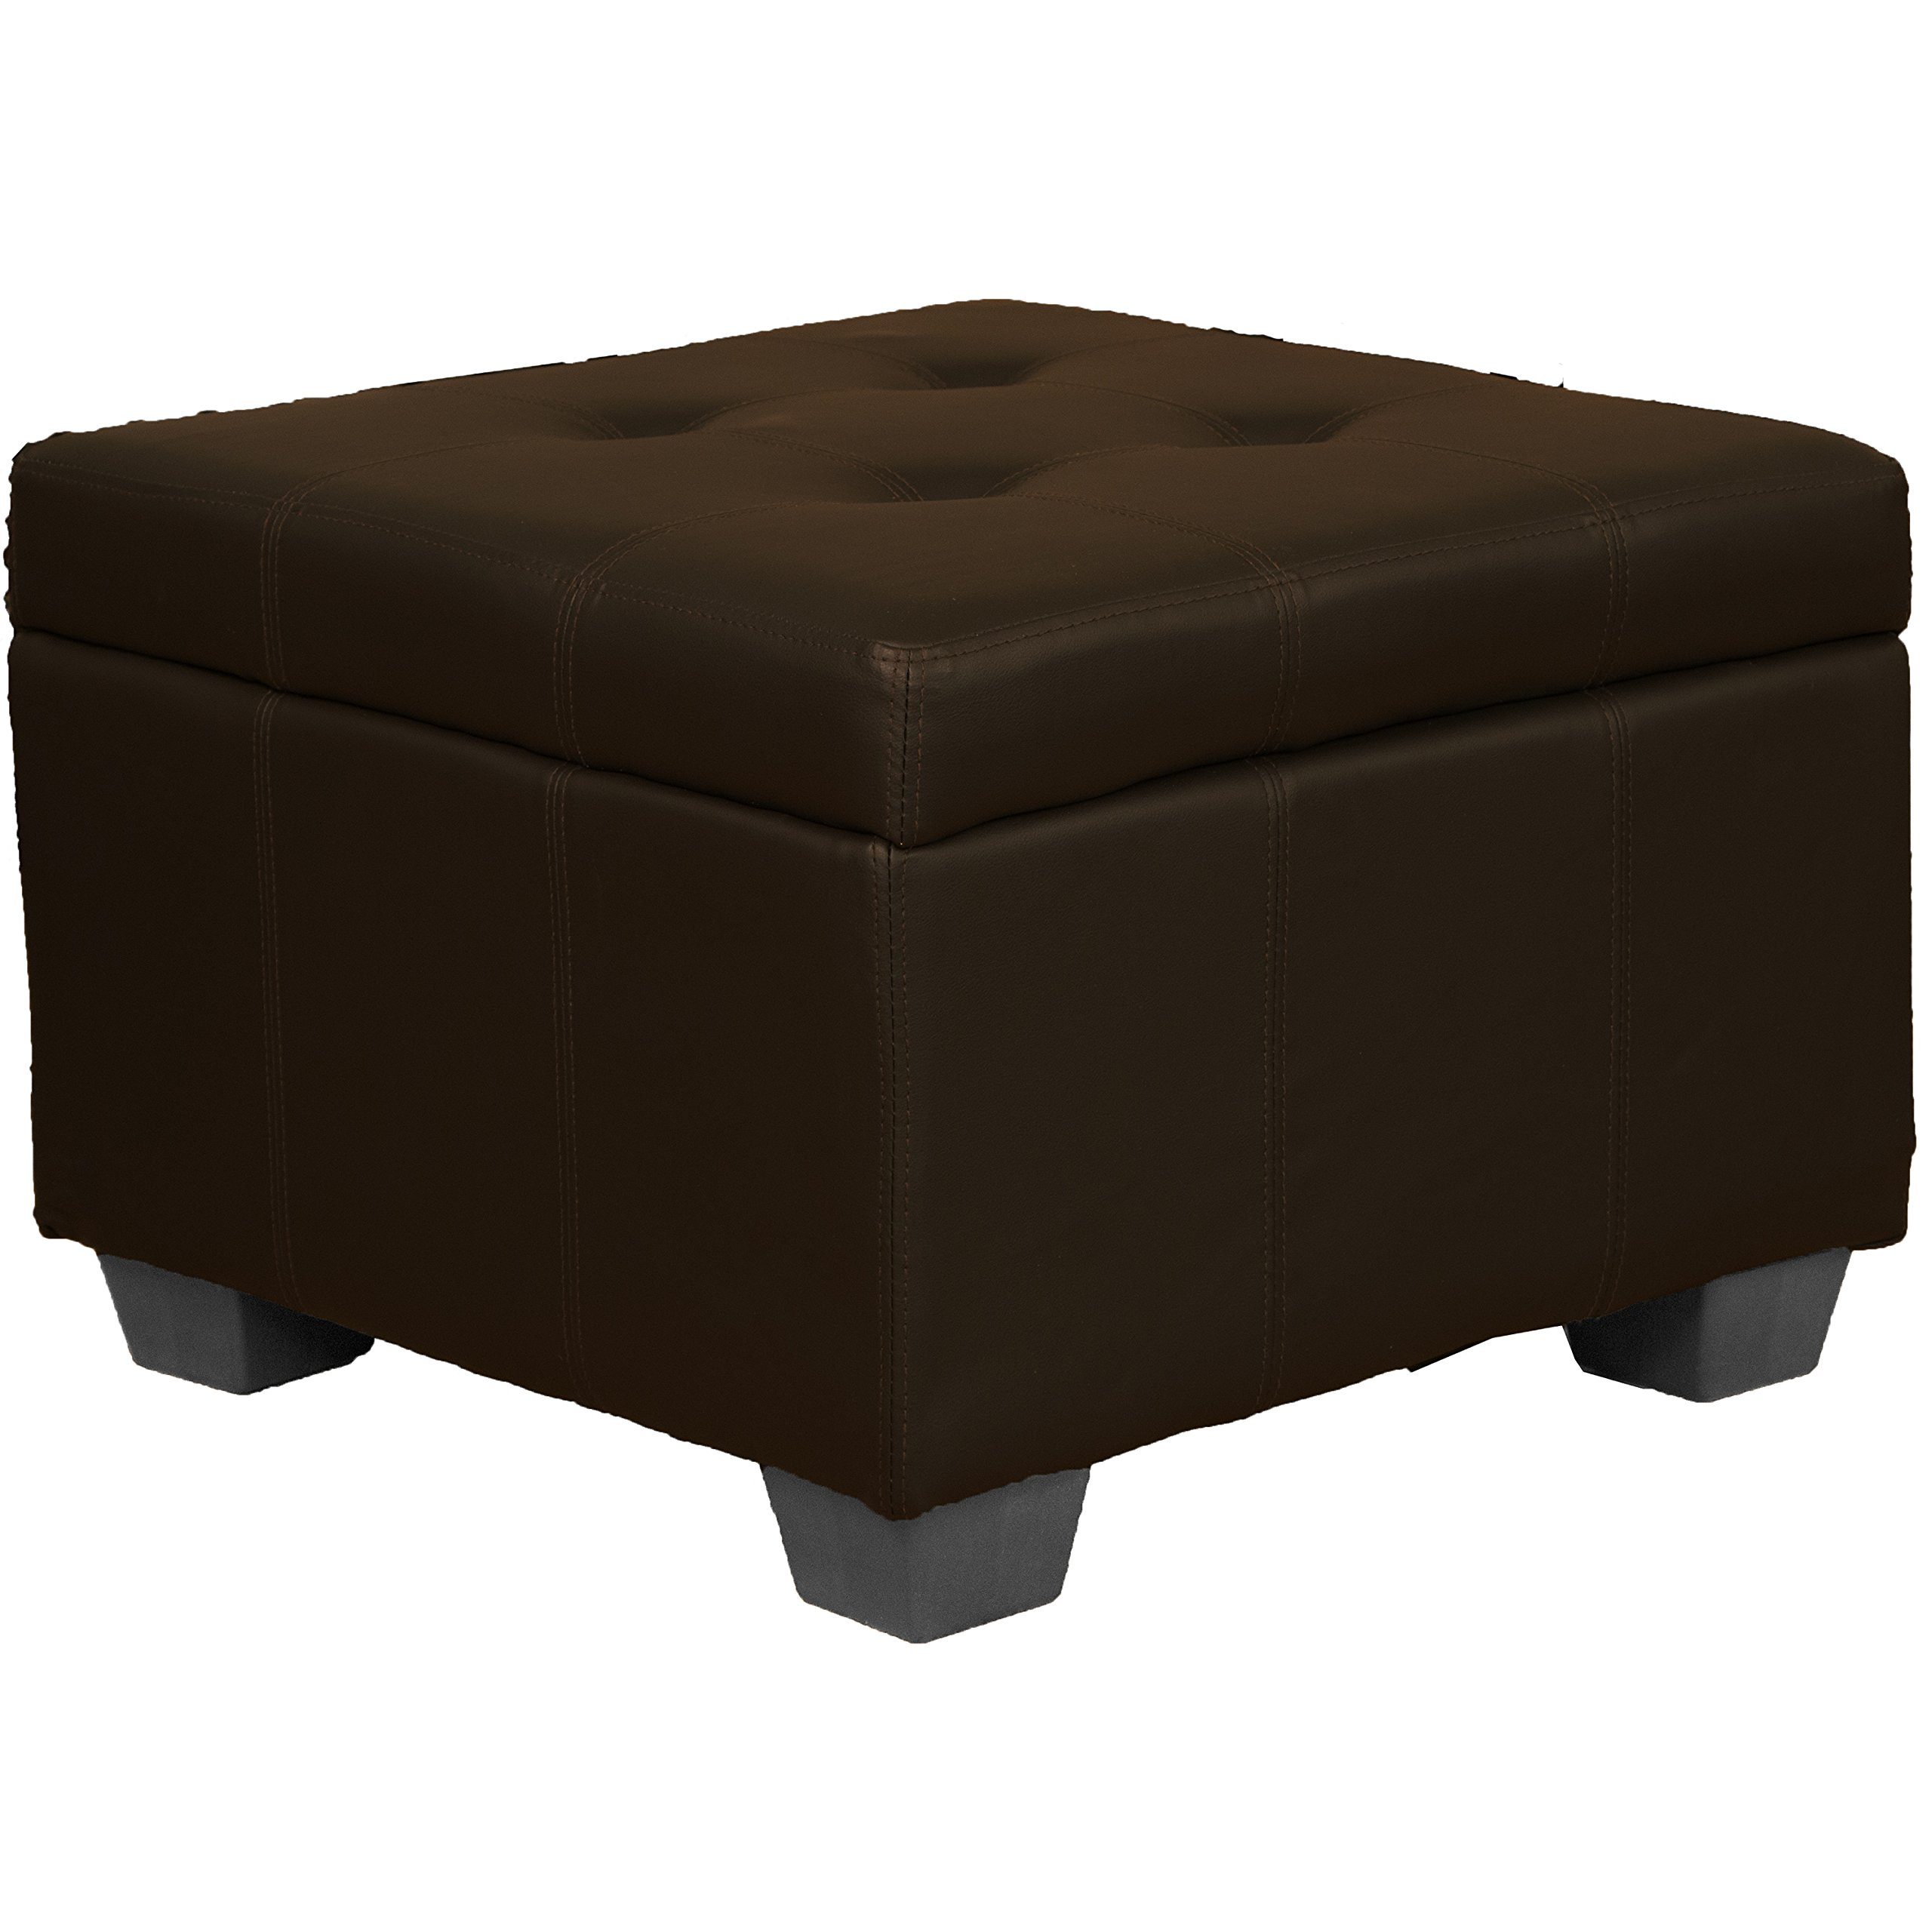 24 Quot X 24 Quot X 18 Quot High Tufted Padded Hinged Storage Ottoman